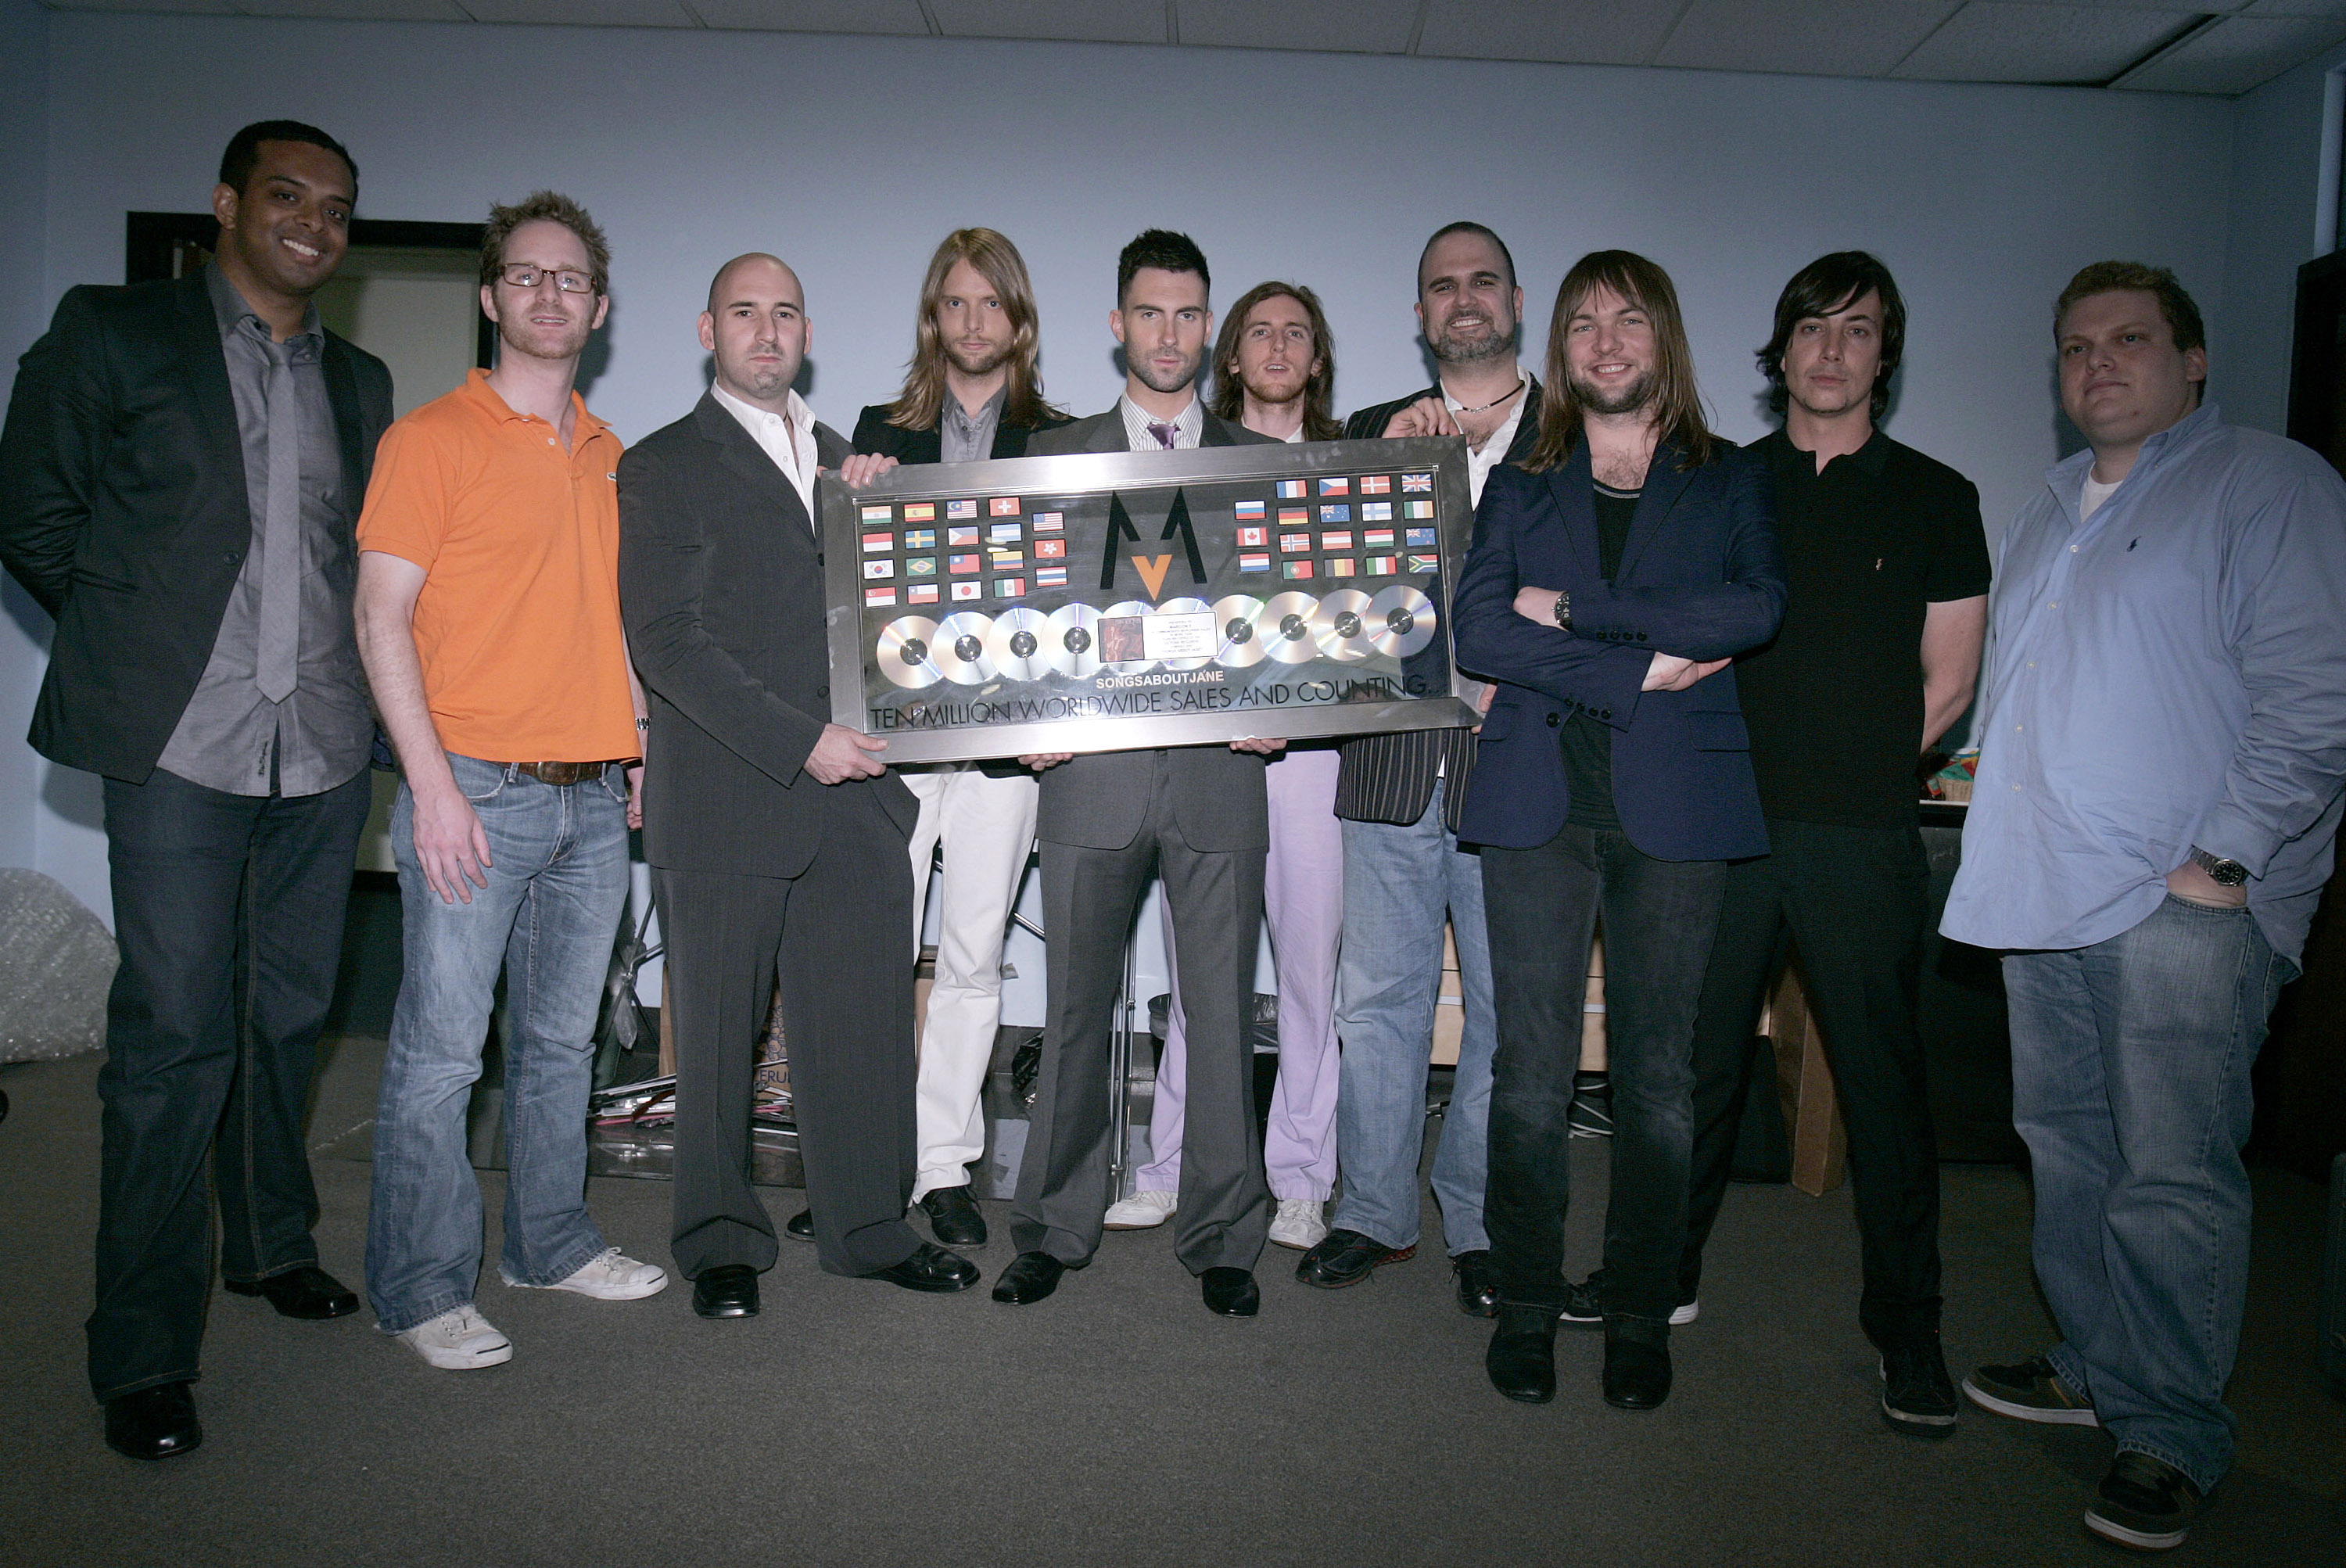 Maroon 5 - 10 Million Records Sold Plaque Presentation